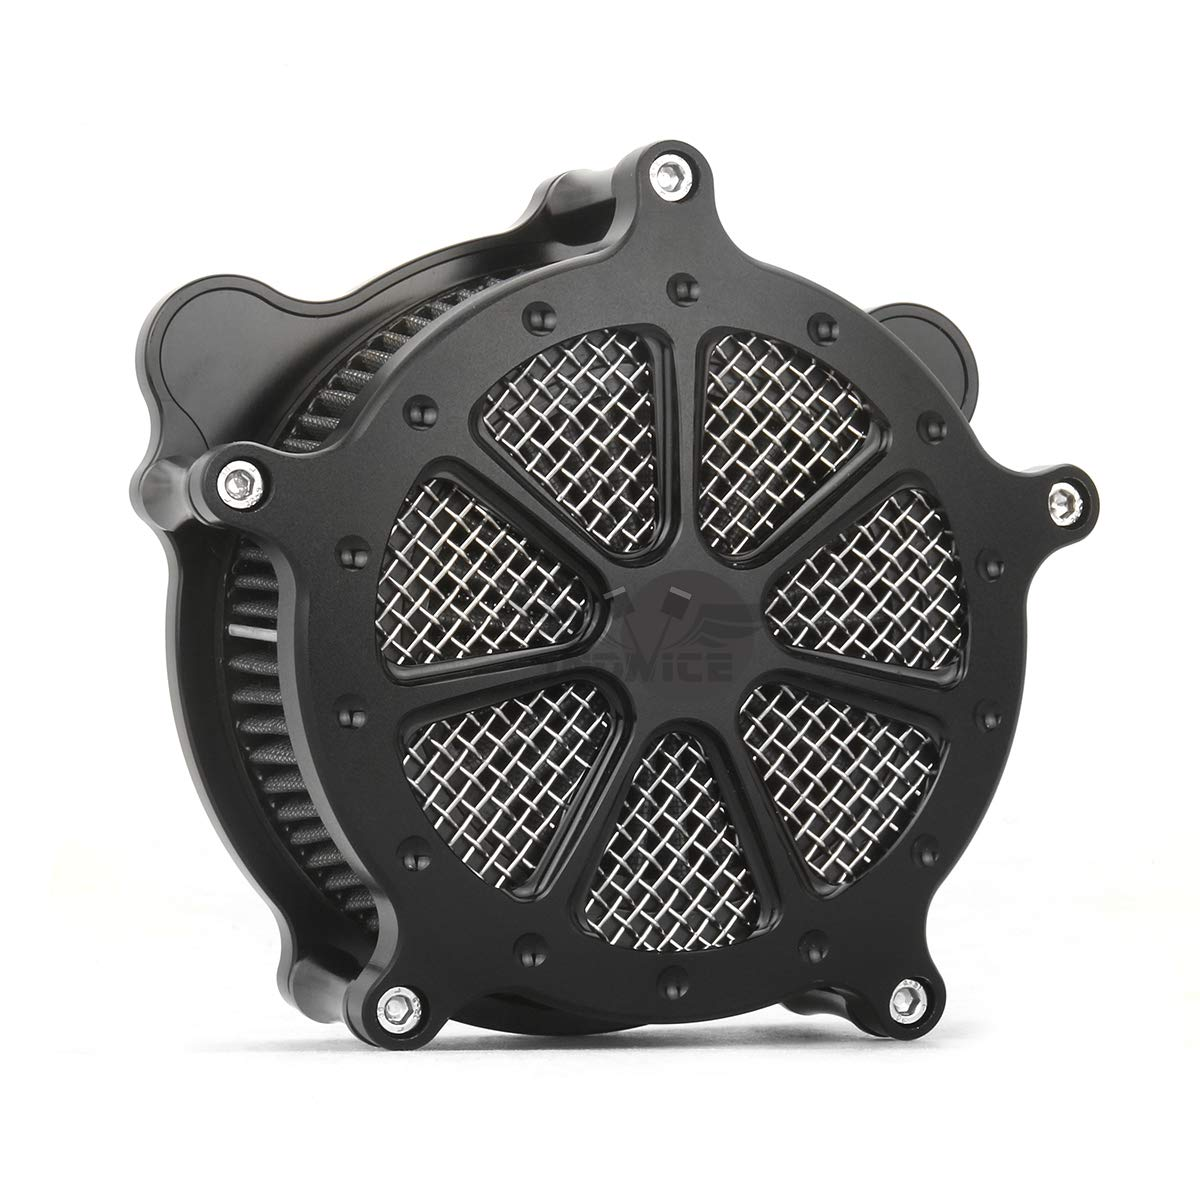 Black AIR CLEANER kits for harley trike air cleaners road glide flhr flhx fltr air filters 2008-2016,air cleaner softail 2016-2017   B07M7X5S6V